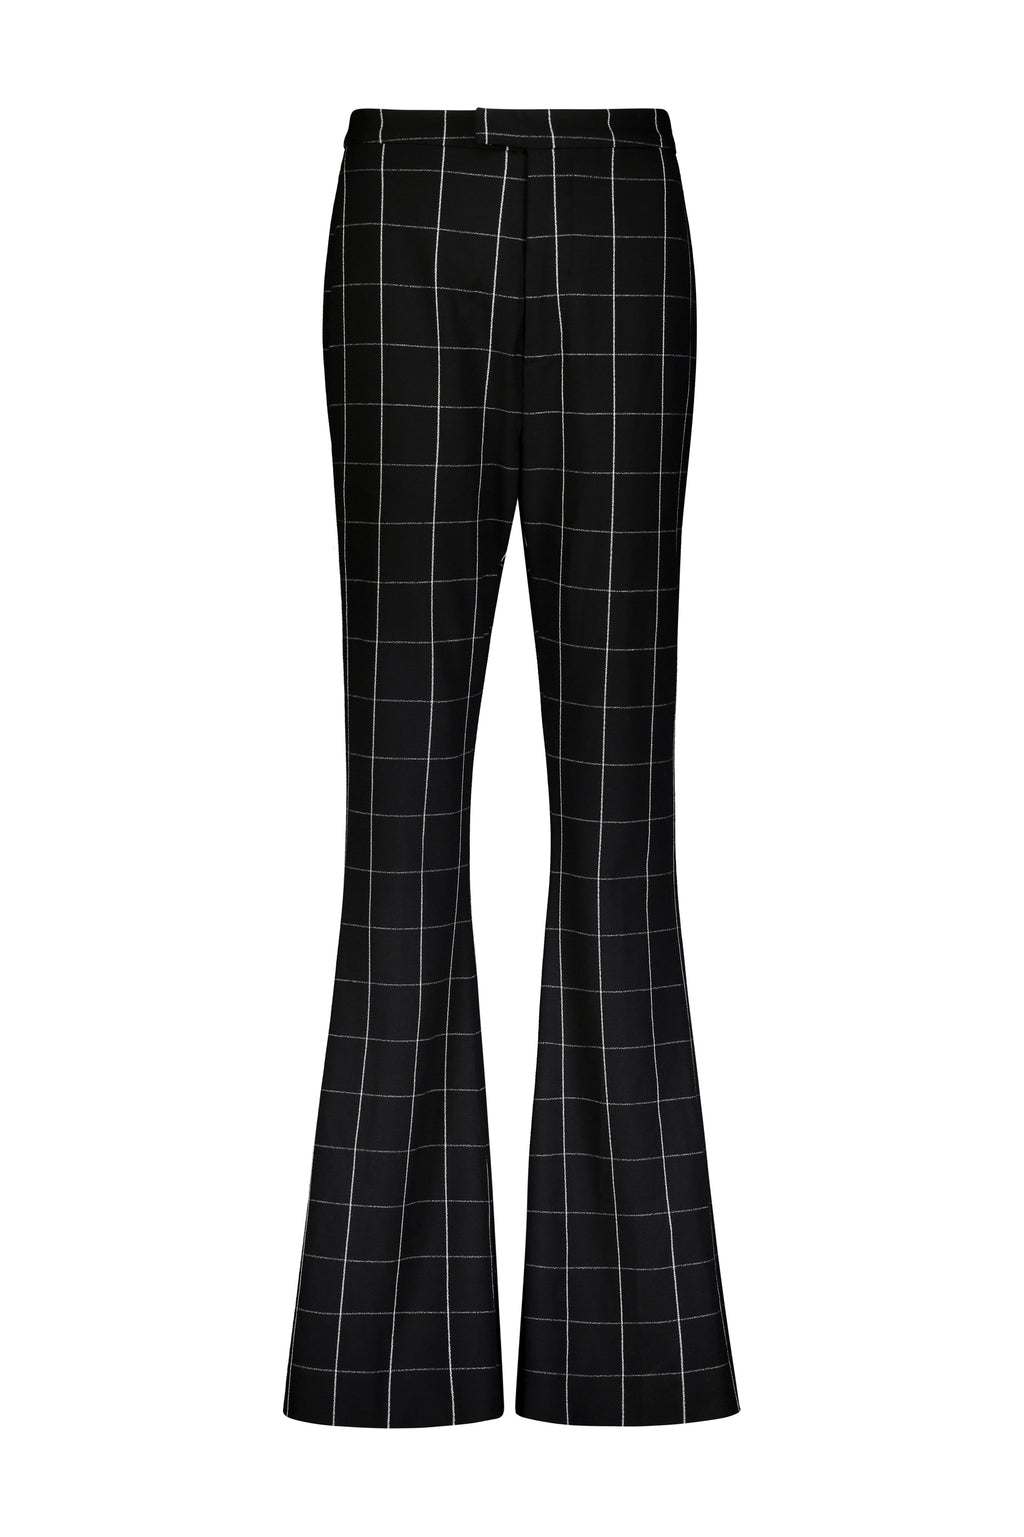 WashingtonRoberts CATALAN PANT Black & White Windowpane Trouser